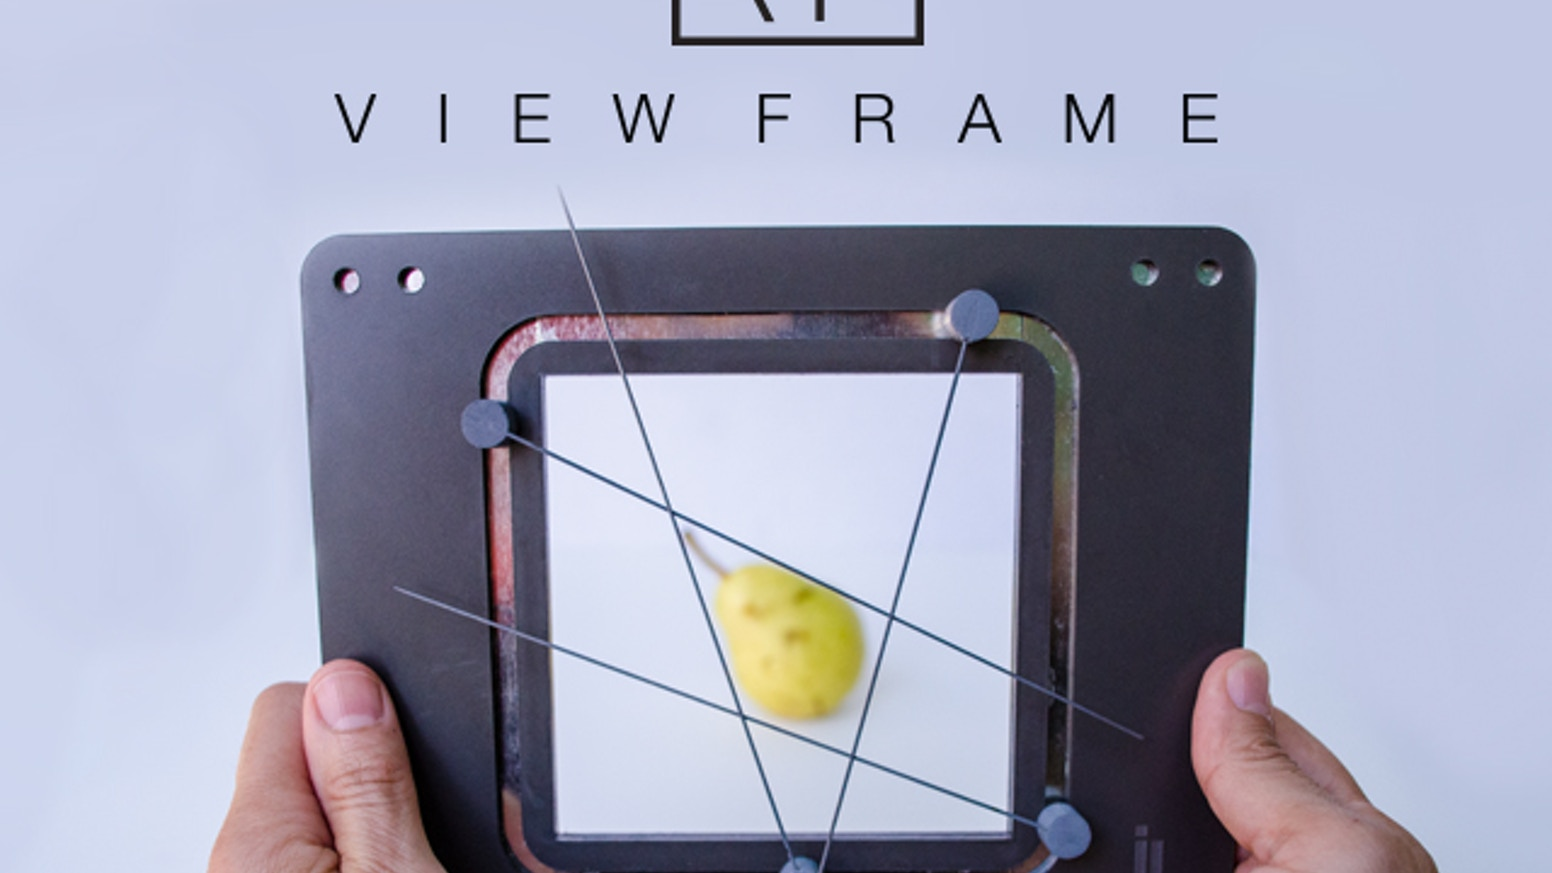 A Visual Tool for a Visual Language.Missed the campaign? You can still purchase View Frame, so head on over to our website! While you are there, learn more about what you can do with View Frame and our mobile app, Miira for iOS!